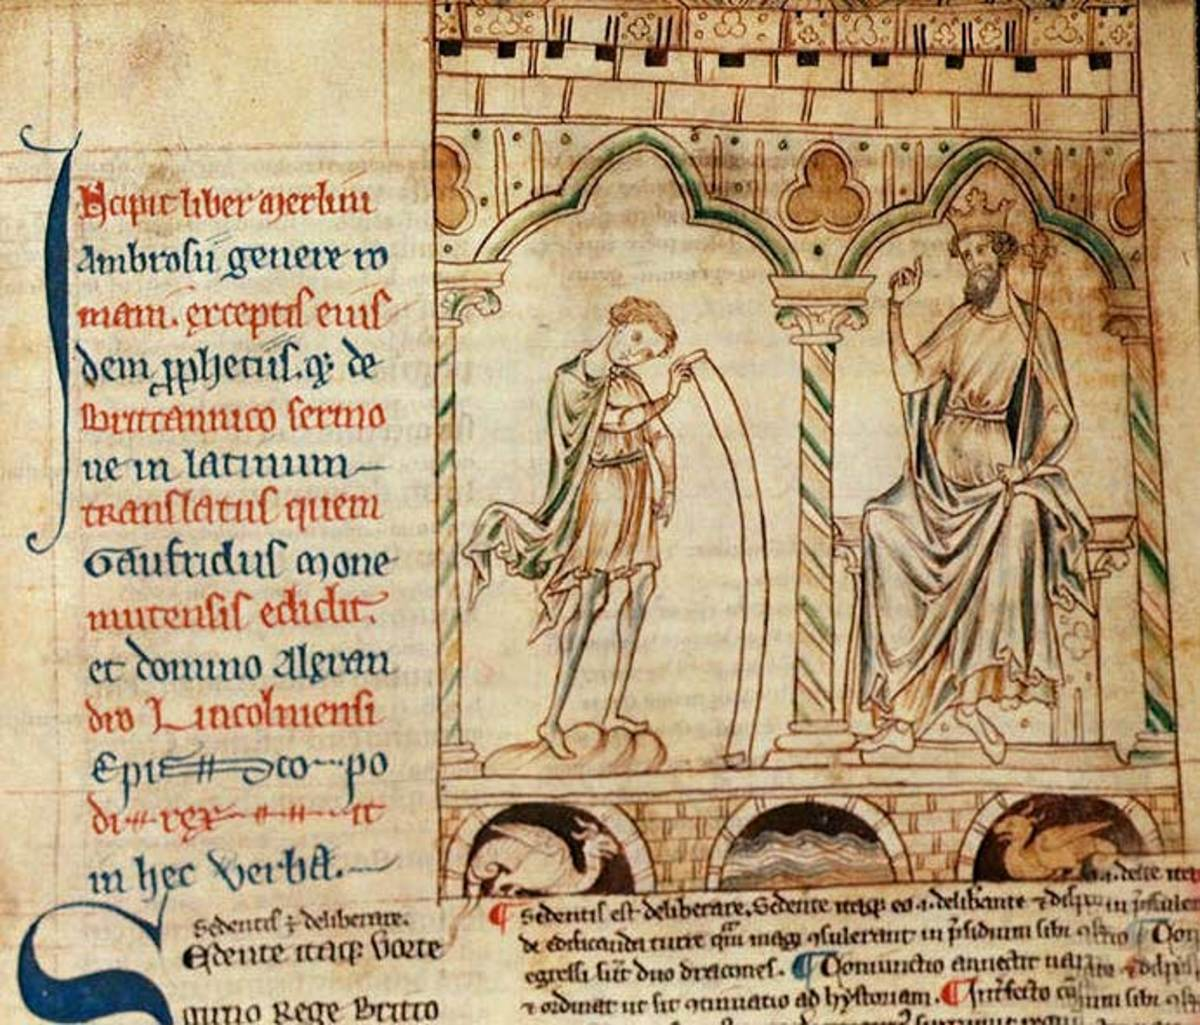 Merlin prophesies for Vortigern, from a manuscript of Geoffrey of Monmouth's Historia Regum Britanniae